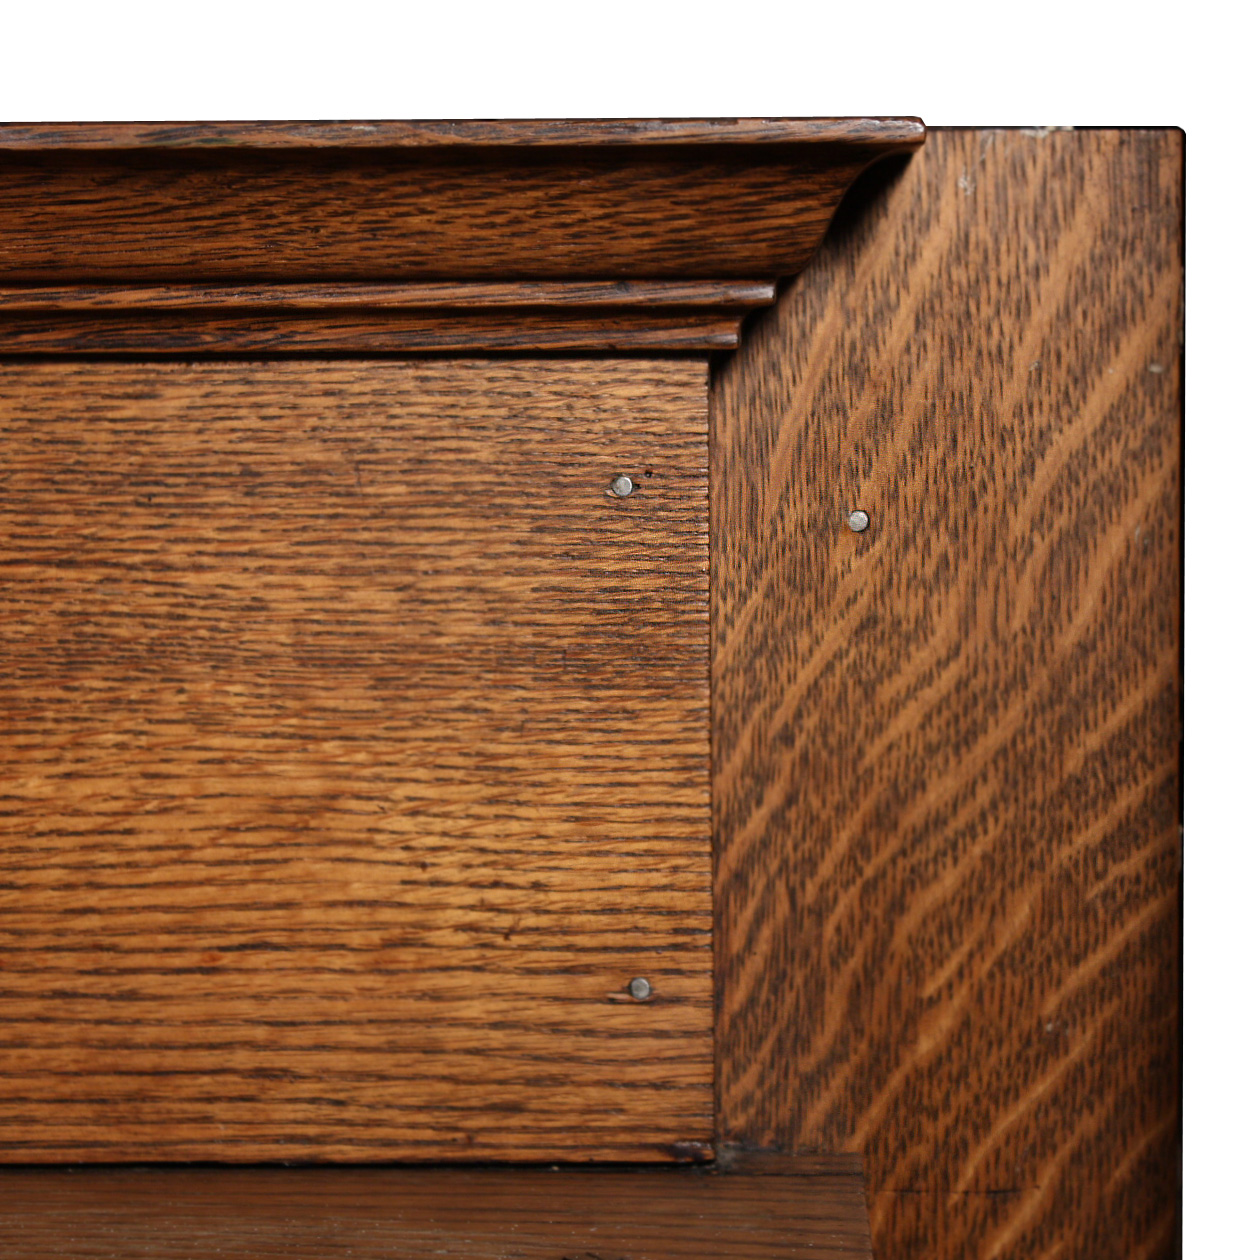 Gorgeous antique tiger oak fireplace mantel, dating from the early 1900s.  The mantel's top edge is beveled, coming down to a lower projecting shelf. - Striking Antique Quarter-Sawn Oak Mantel With Columns NFPM52-RW